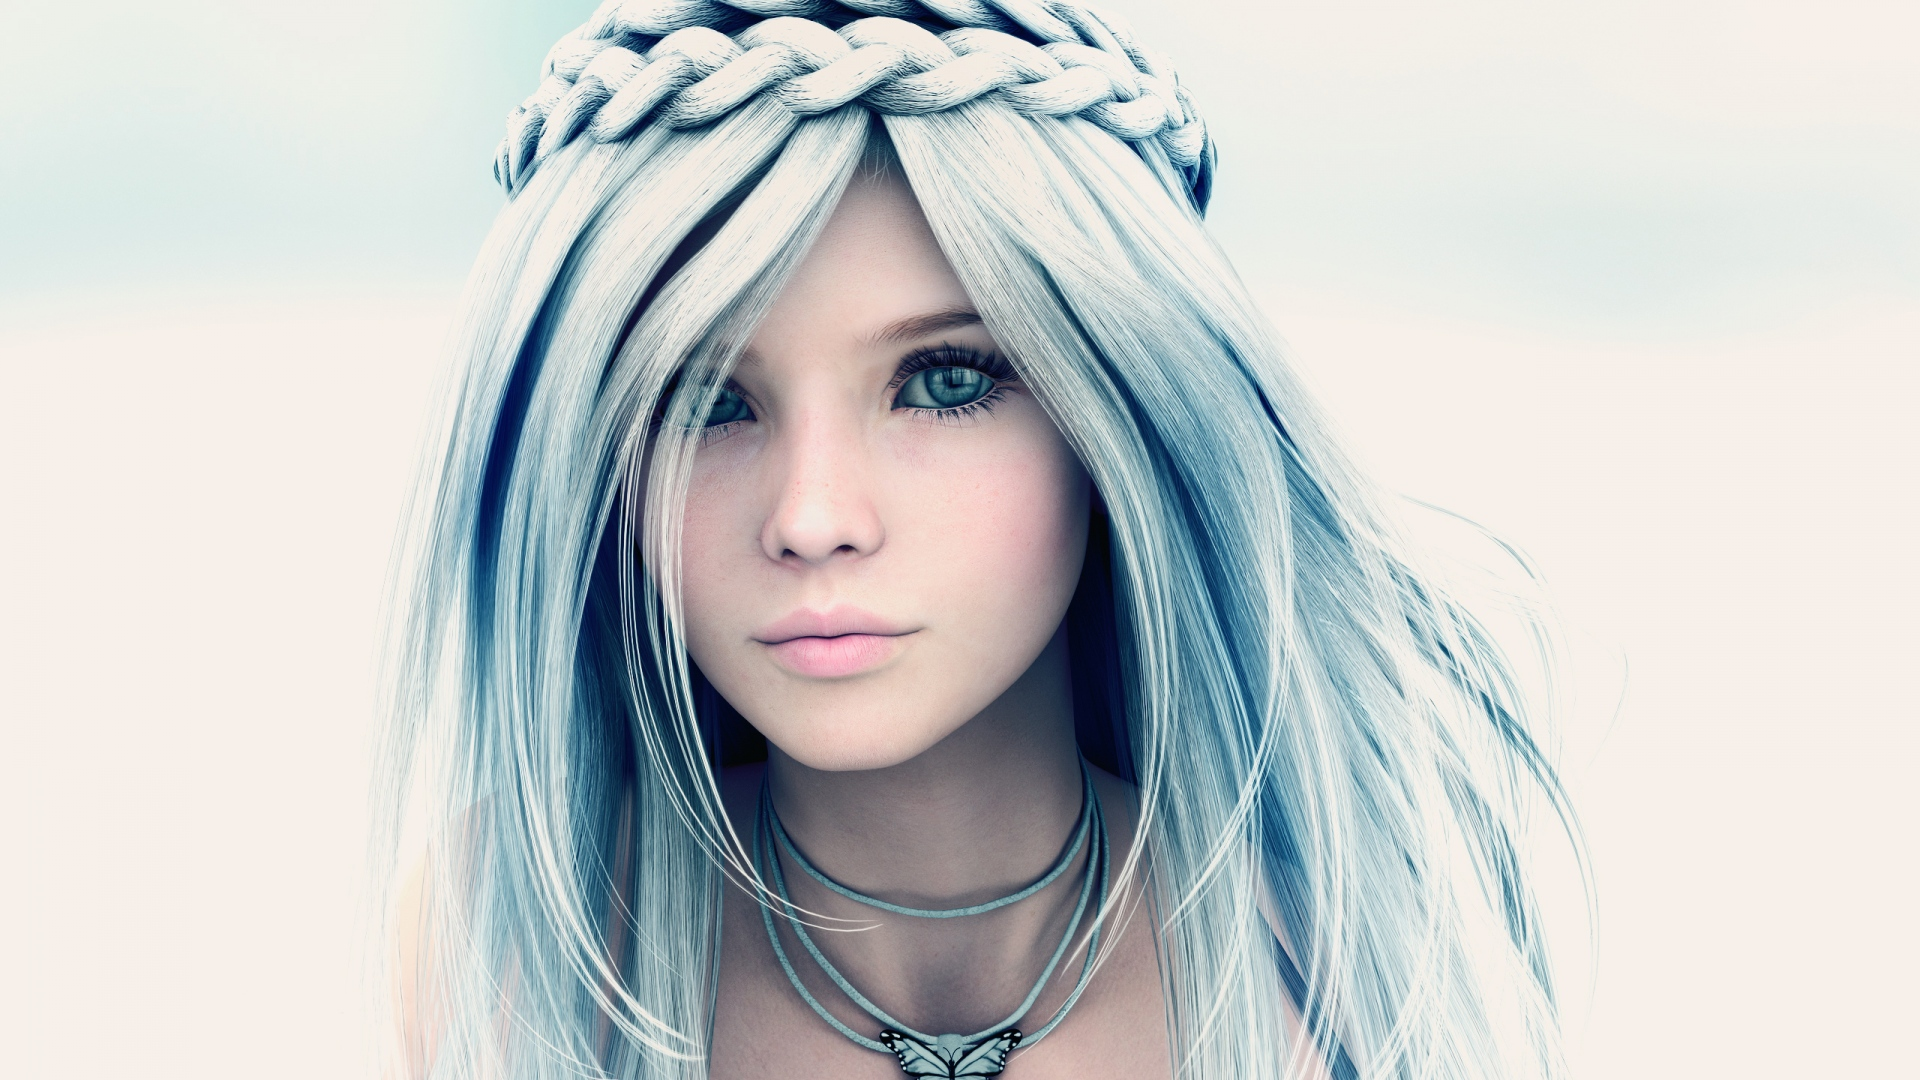 3d Rendering Girl Face Art HD Wallpapers